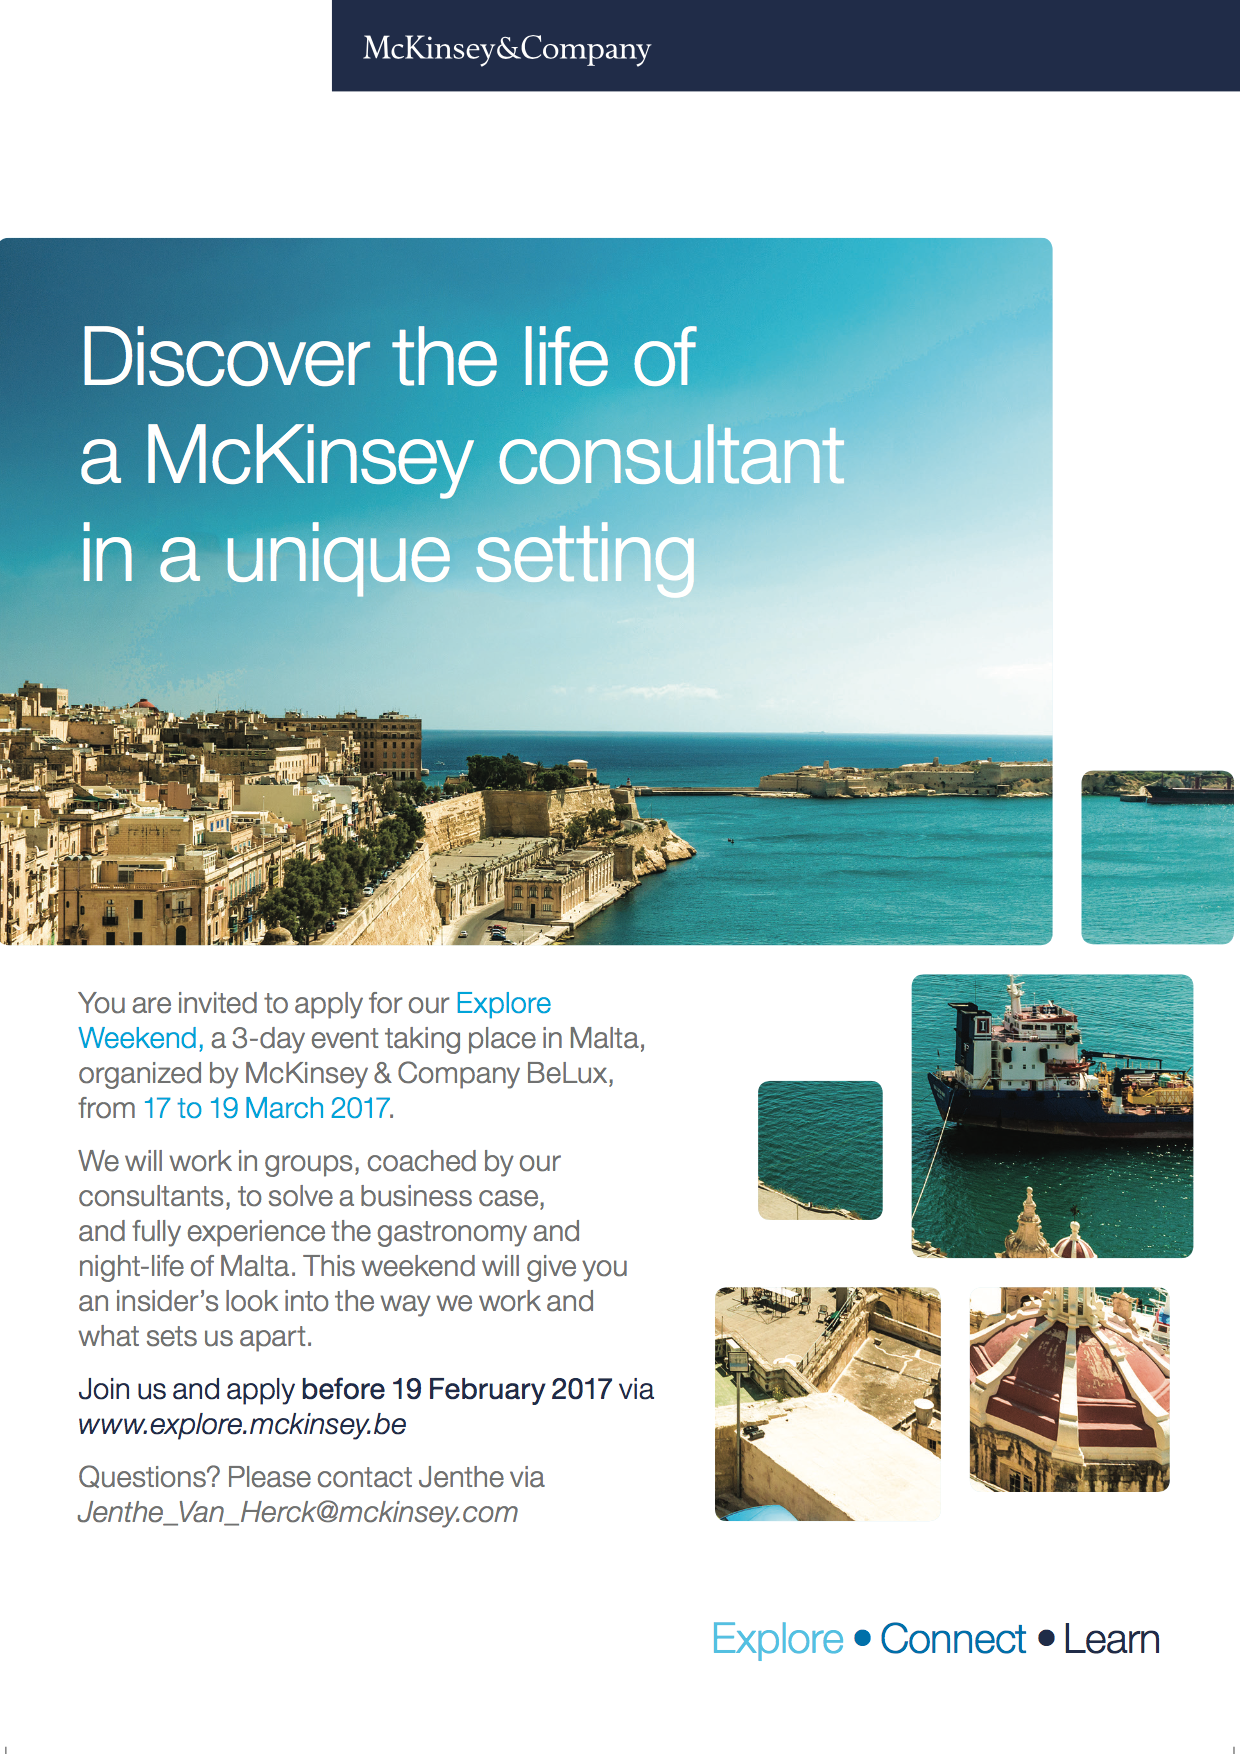 McKinsey & Company Explore Weekend